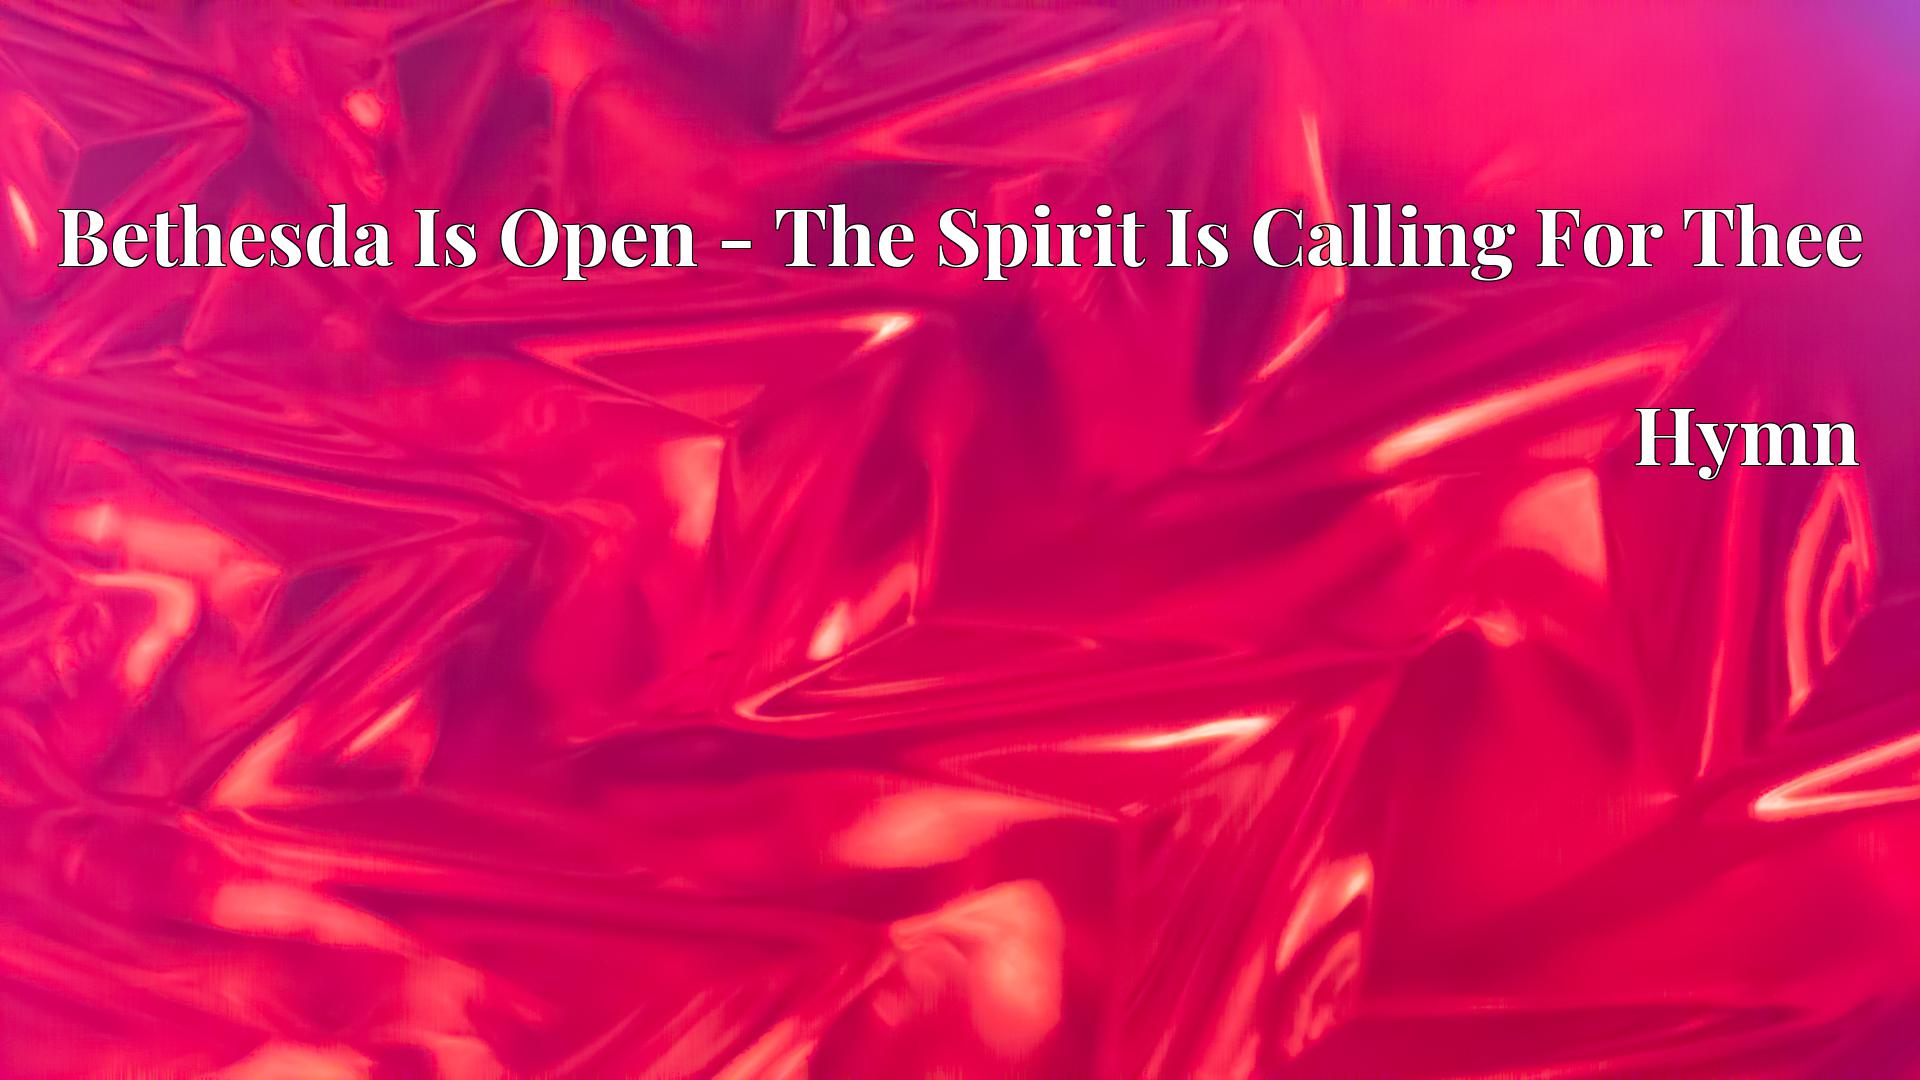 Bethesda Is Open - The Spirit Is Calling For Thee Hymn